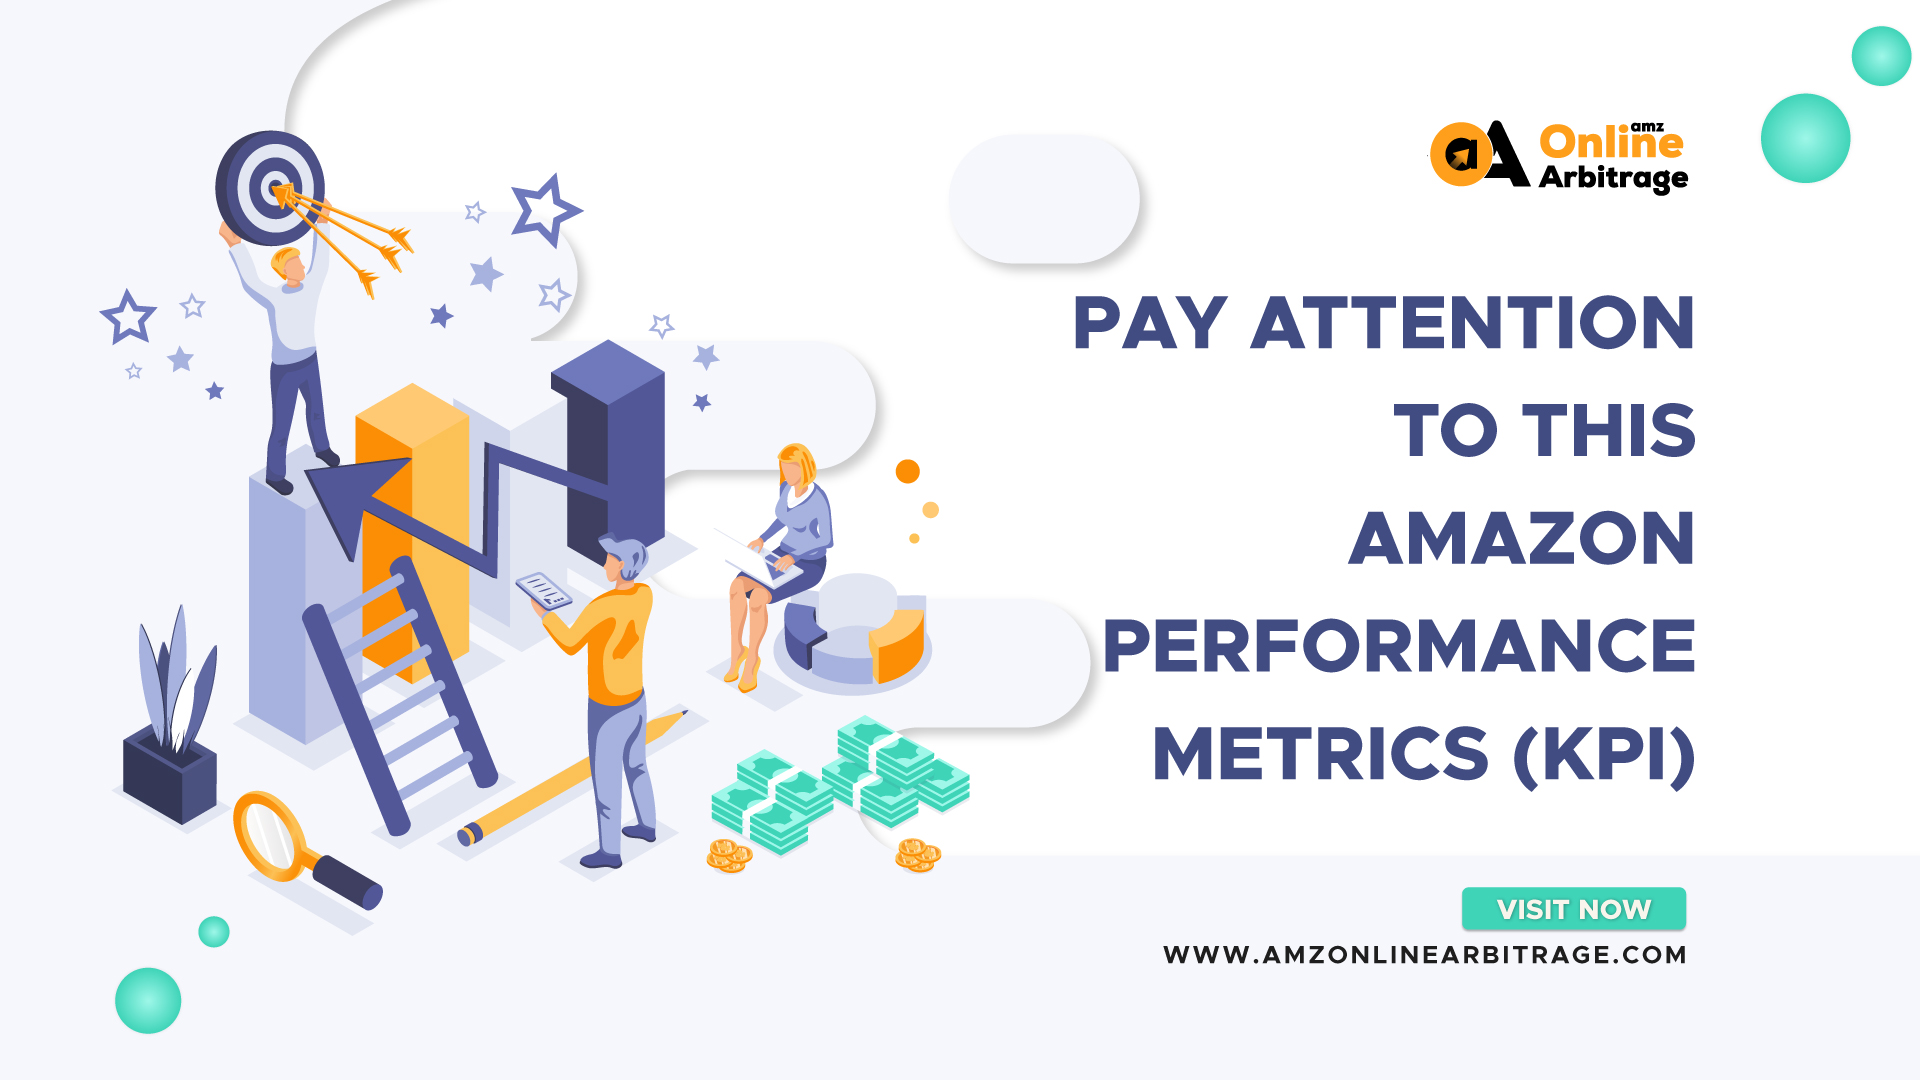 PAY ATTENTION TO THIS AMAZON PERFORMANCE METRICS (KPI)